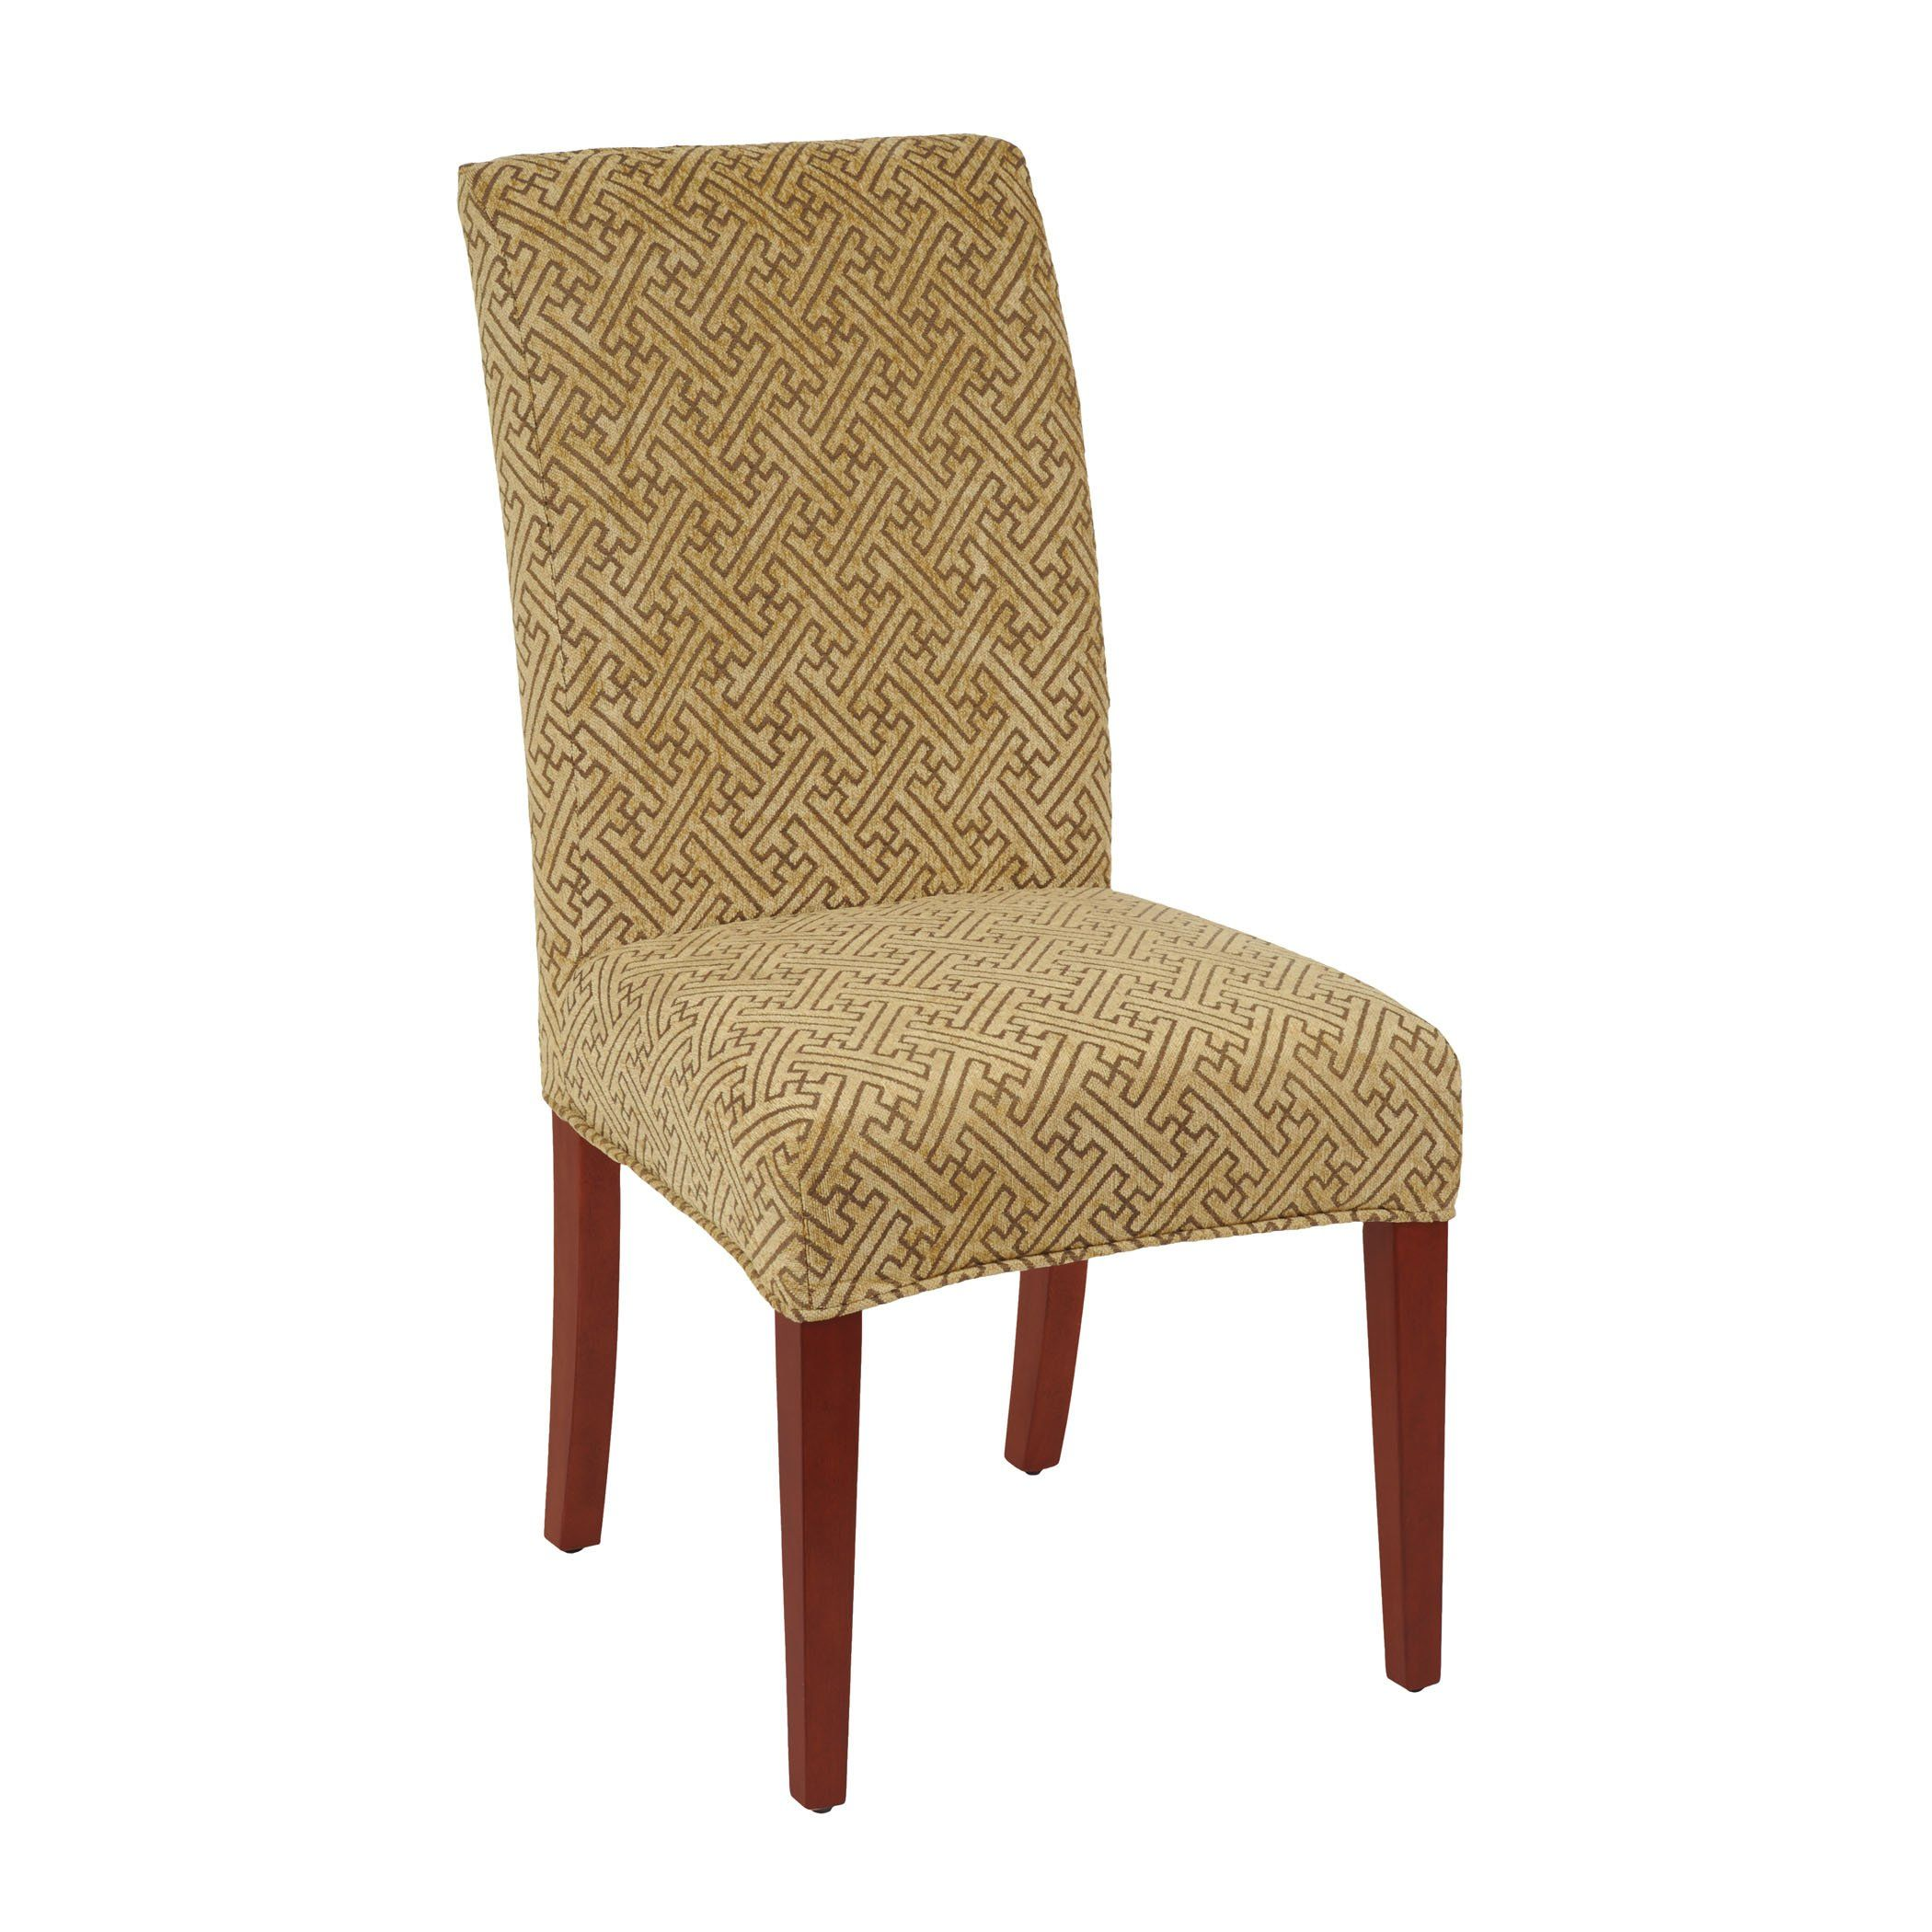 The Bailey Street Couture Covers Parsons Chair Slipcover